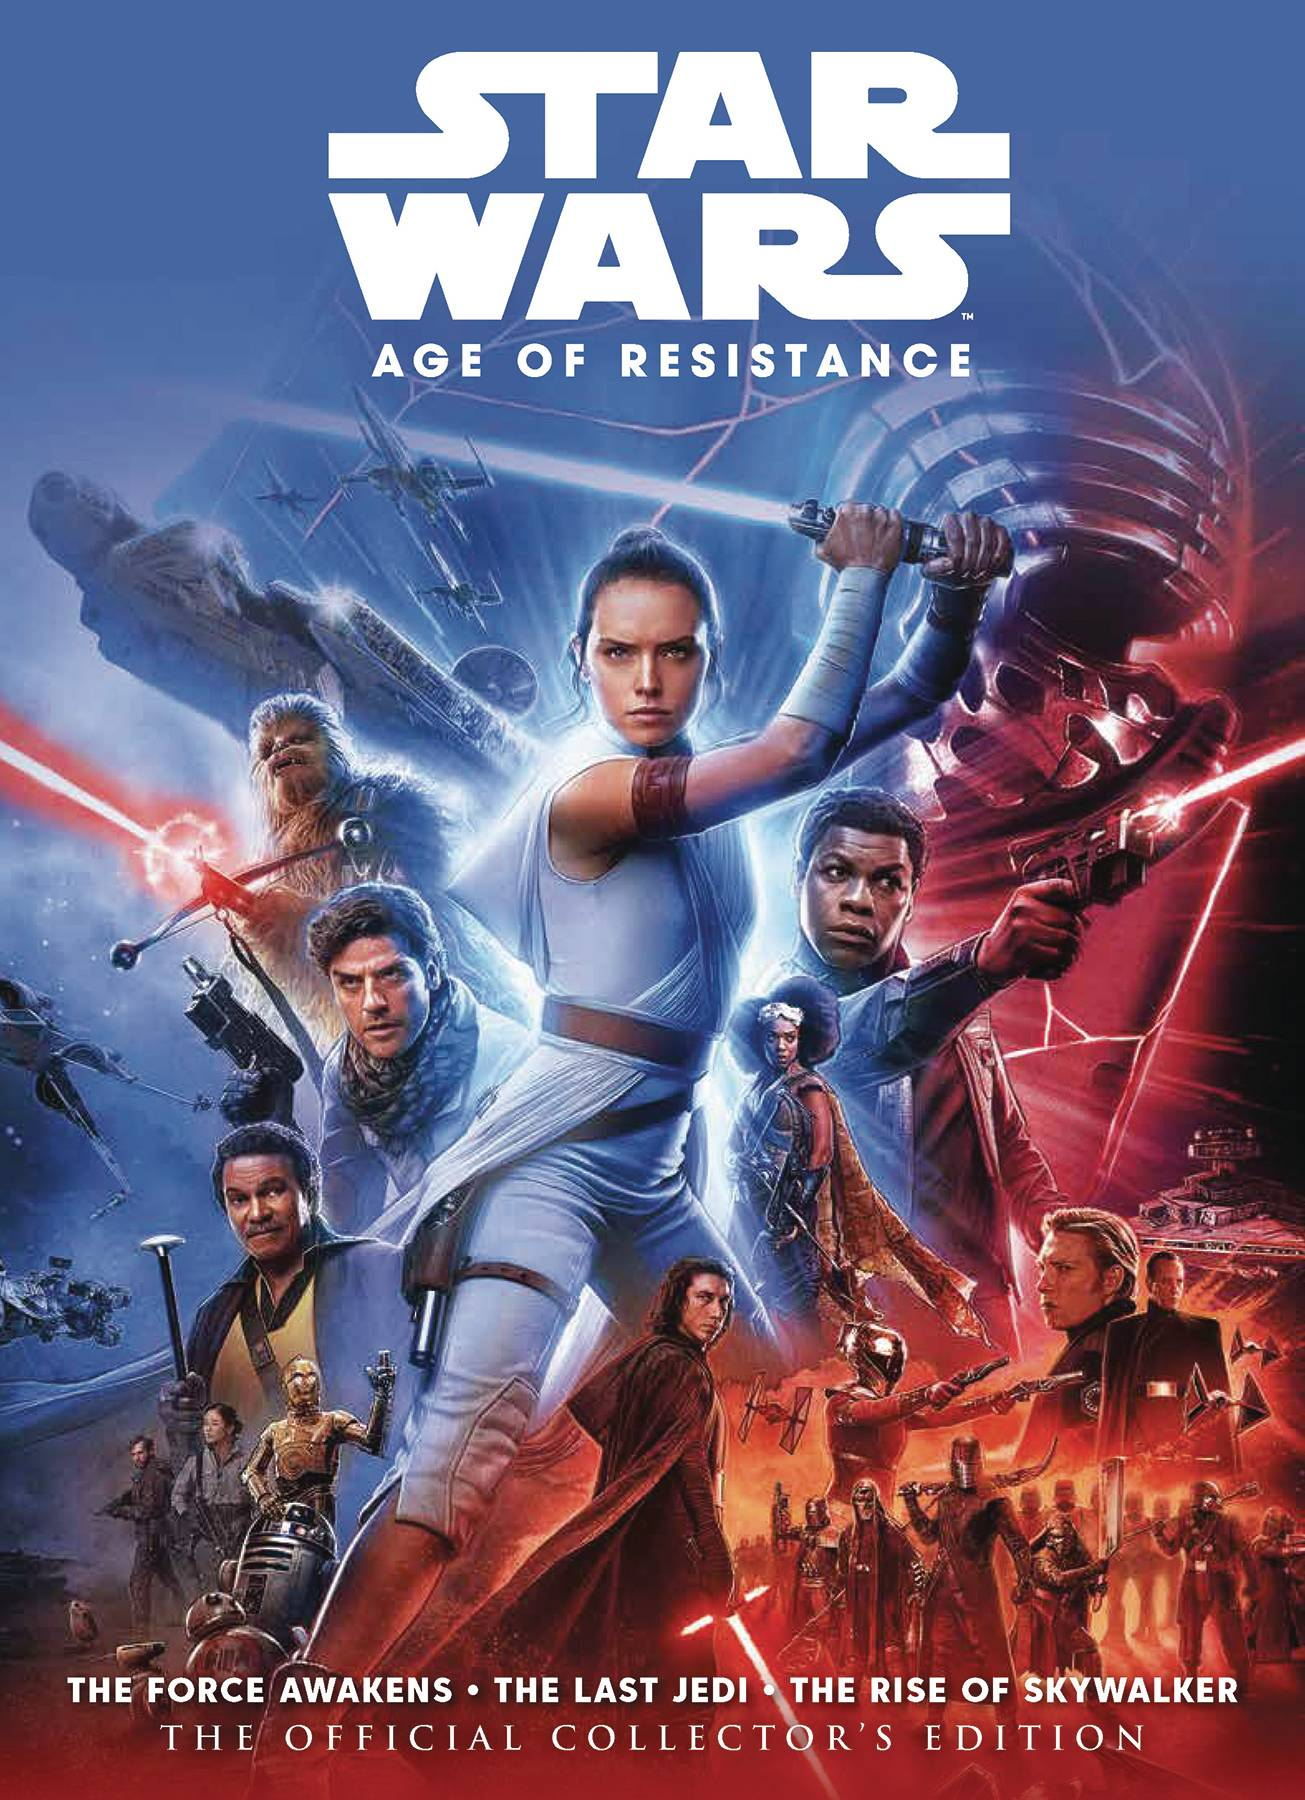 Star Wars: The Age of Resistance Trilogy Special